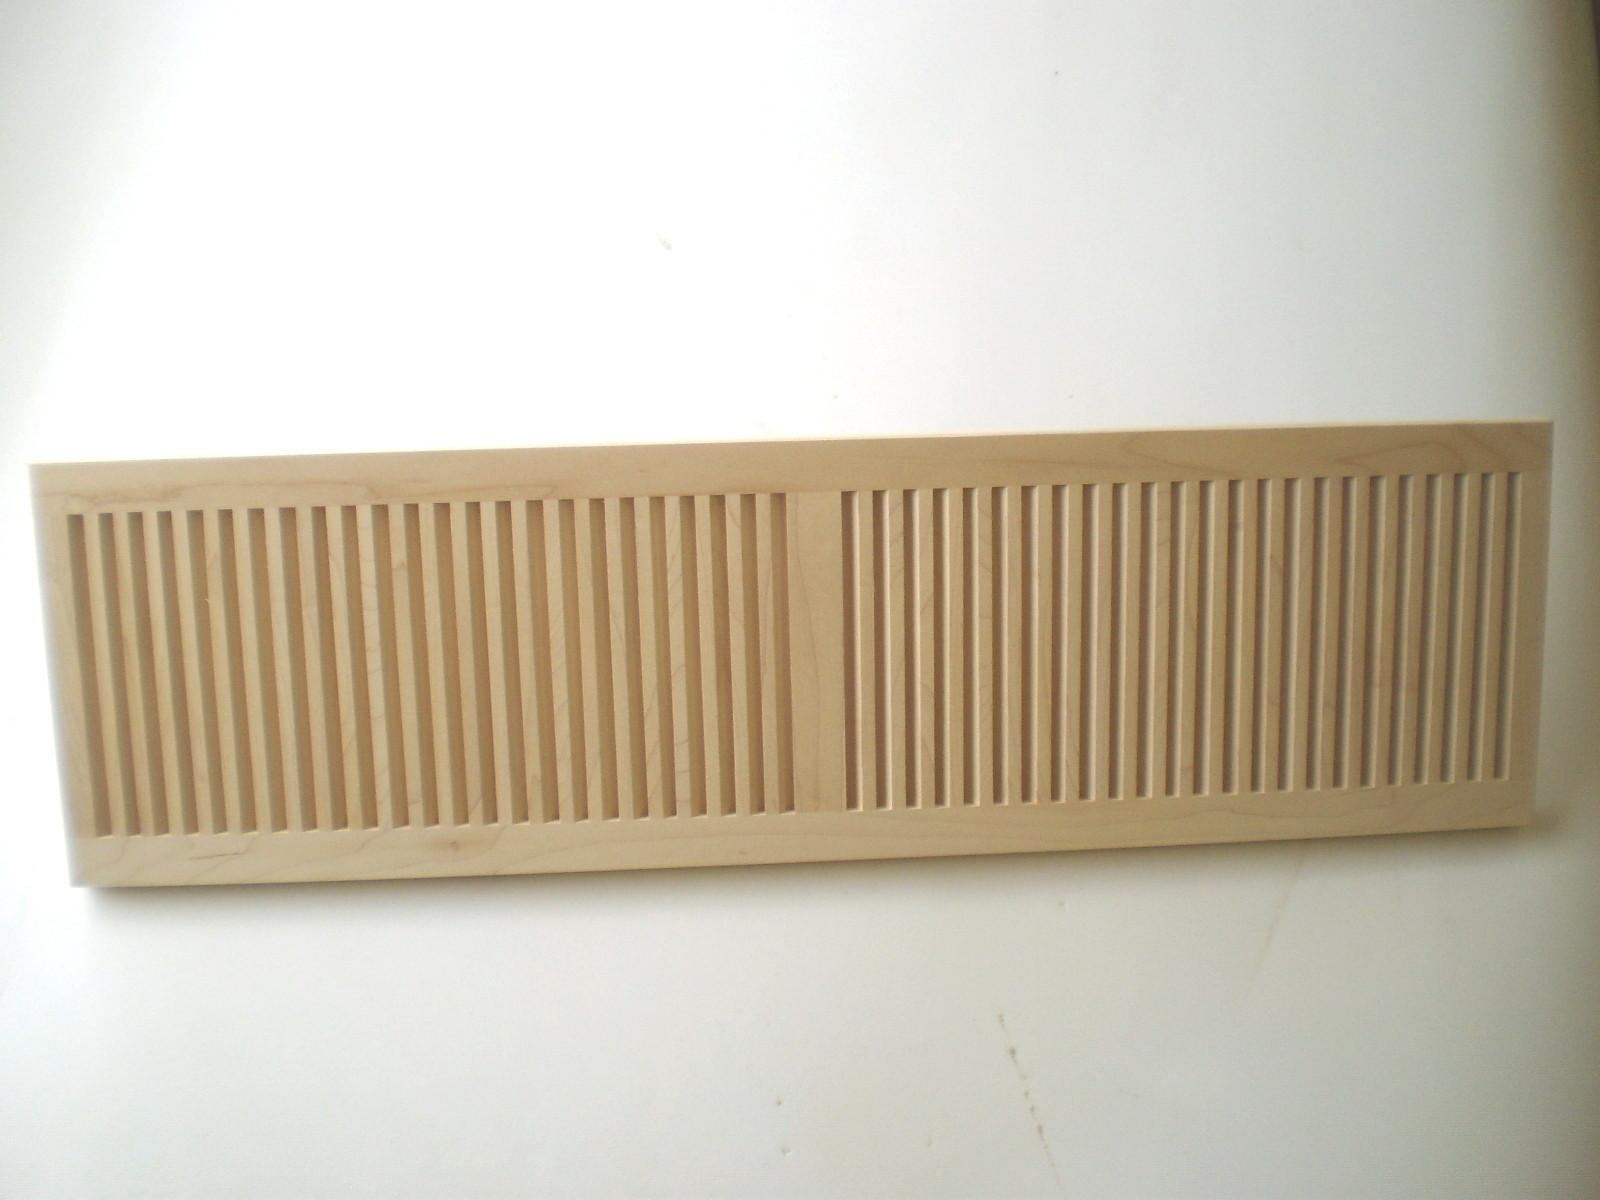 Return Air Vent Cover 170 Series Grille